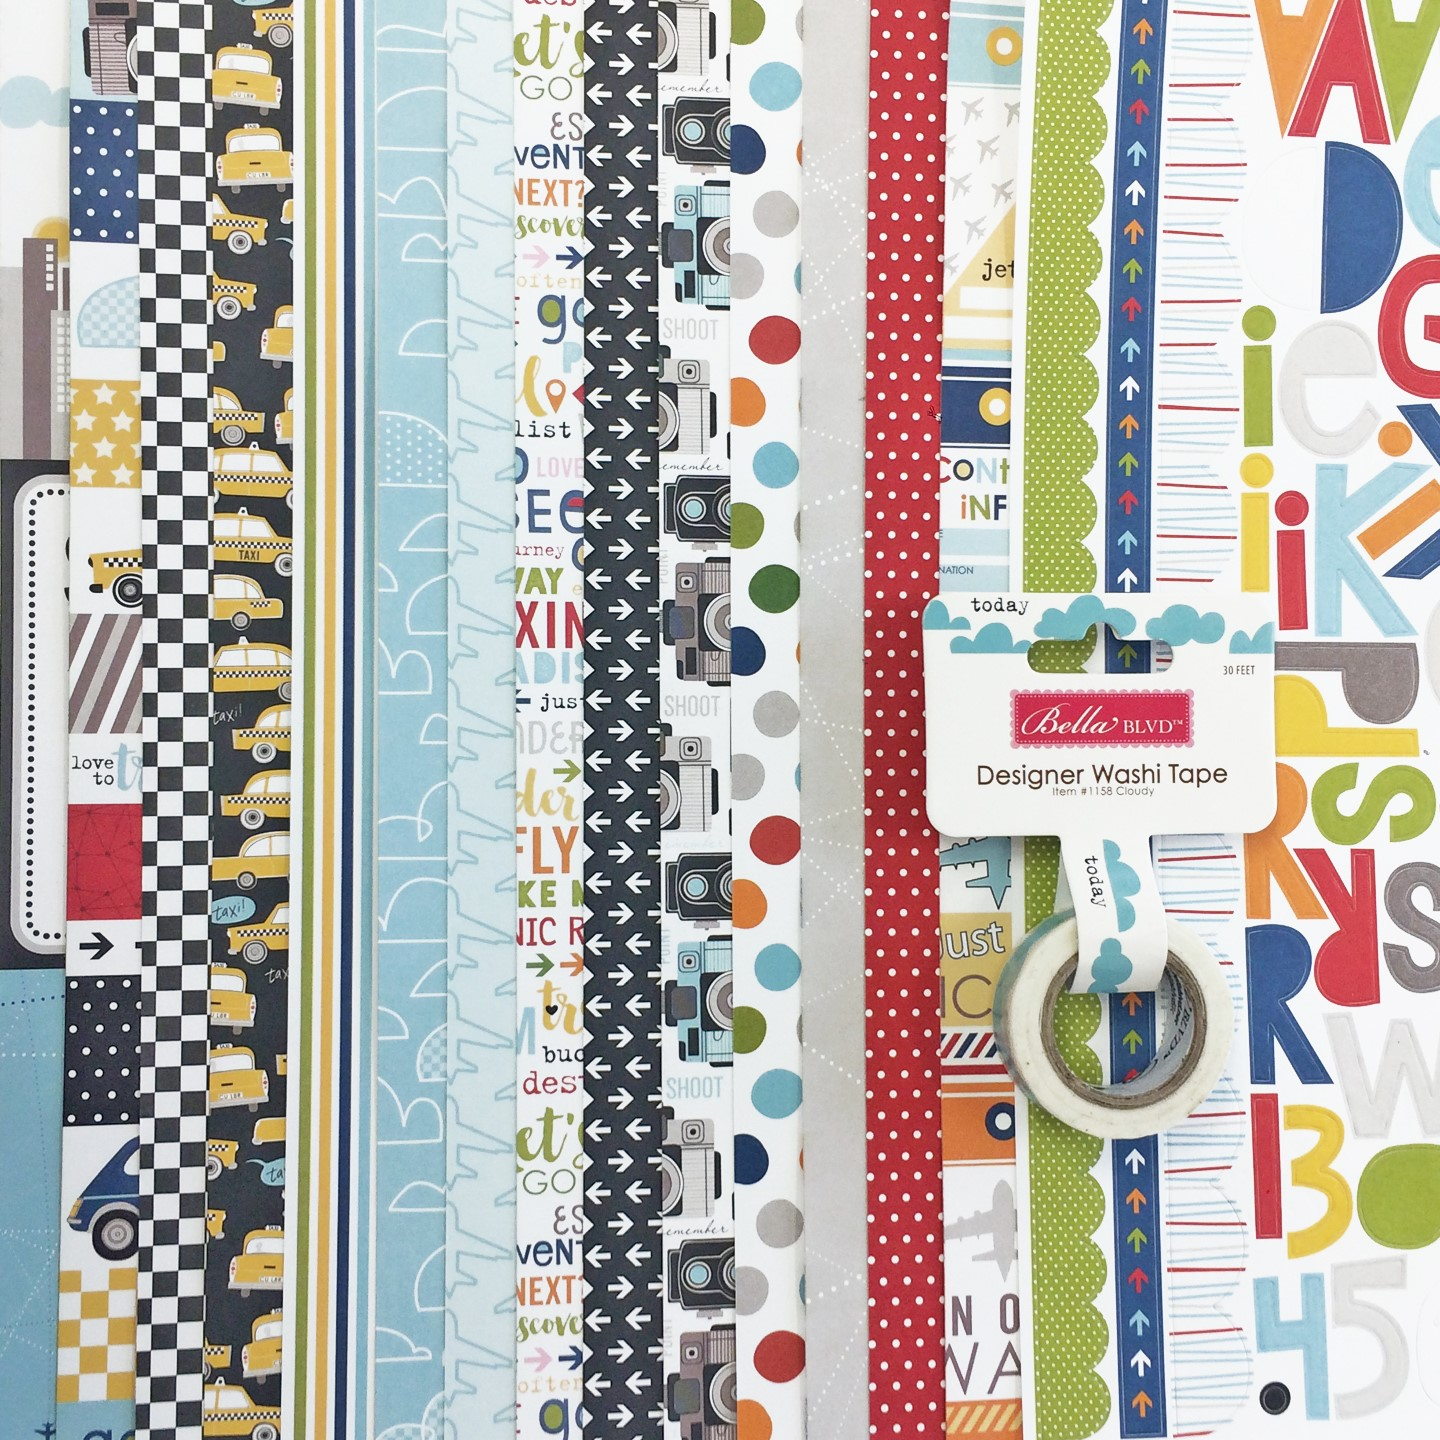 Bella Blvd prize - Let's Go Collection and coordinating Washi Tape